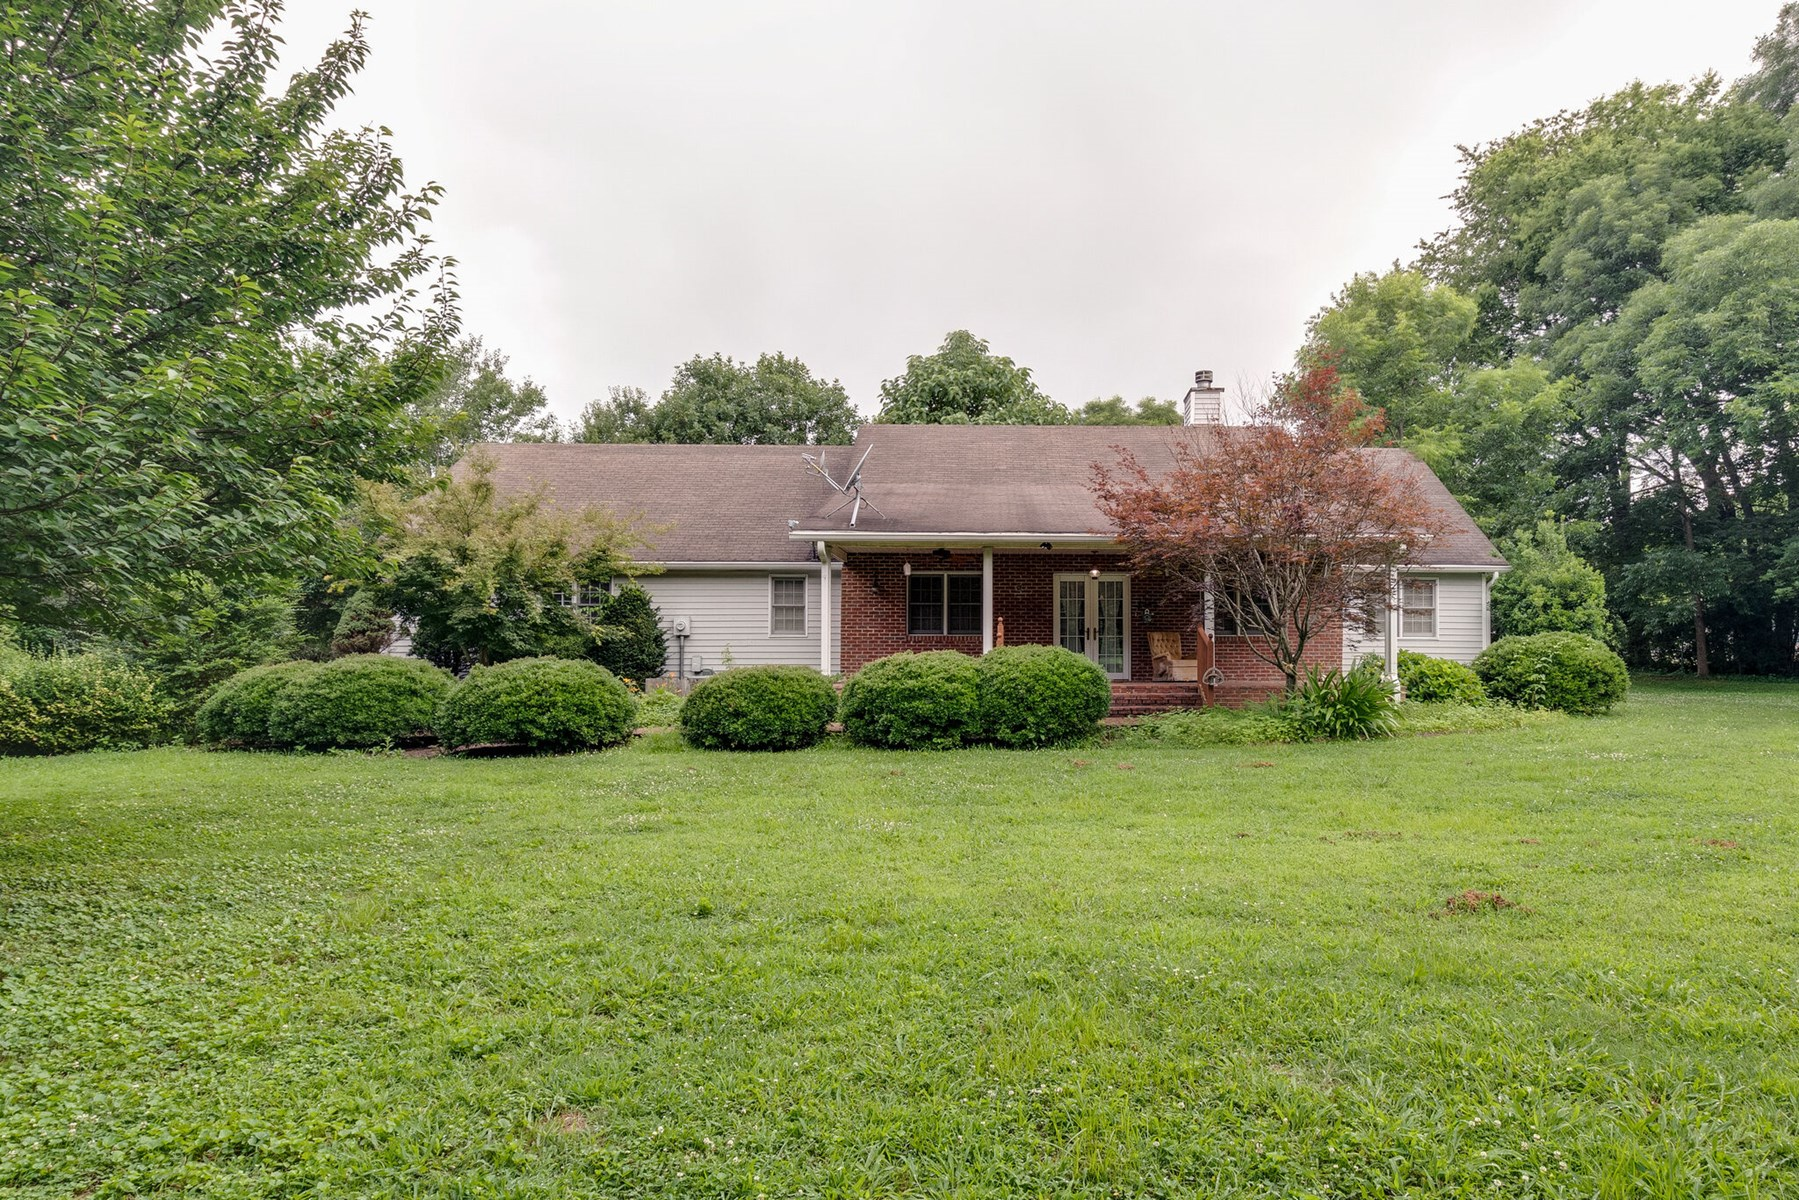 230 Maplewood Dr. Auction in Cornersville, Tennessee